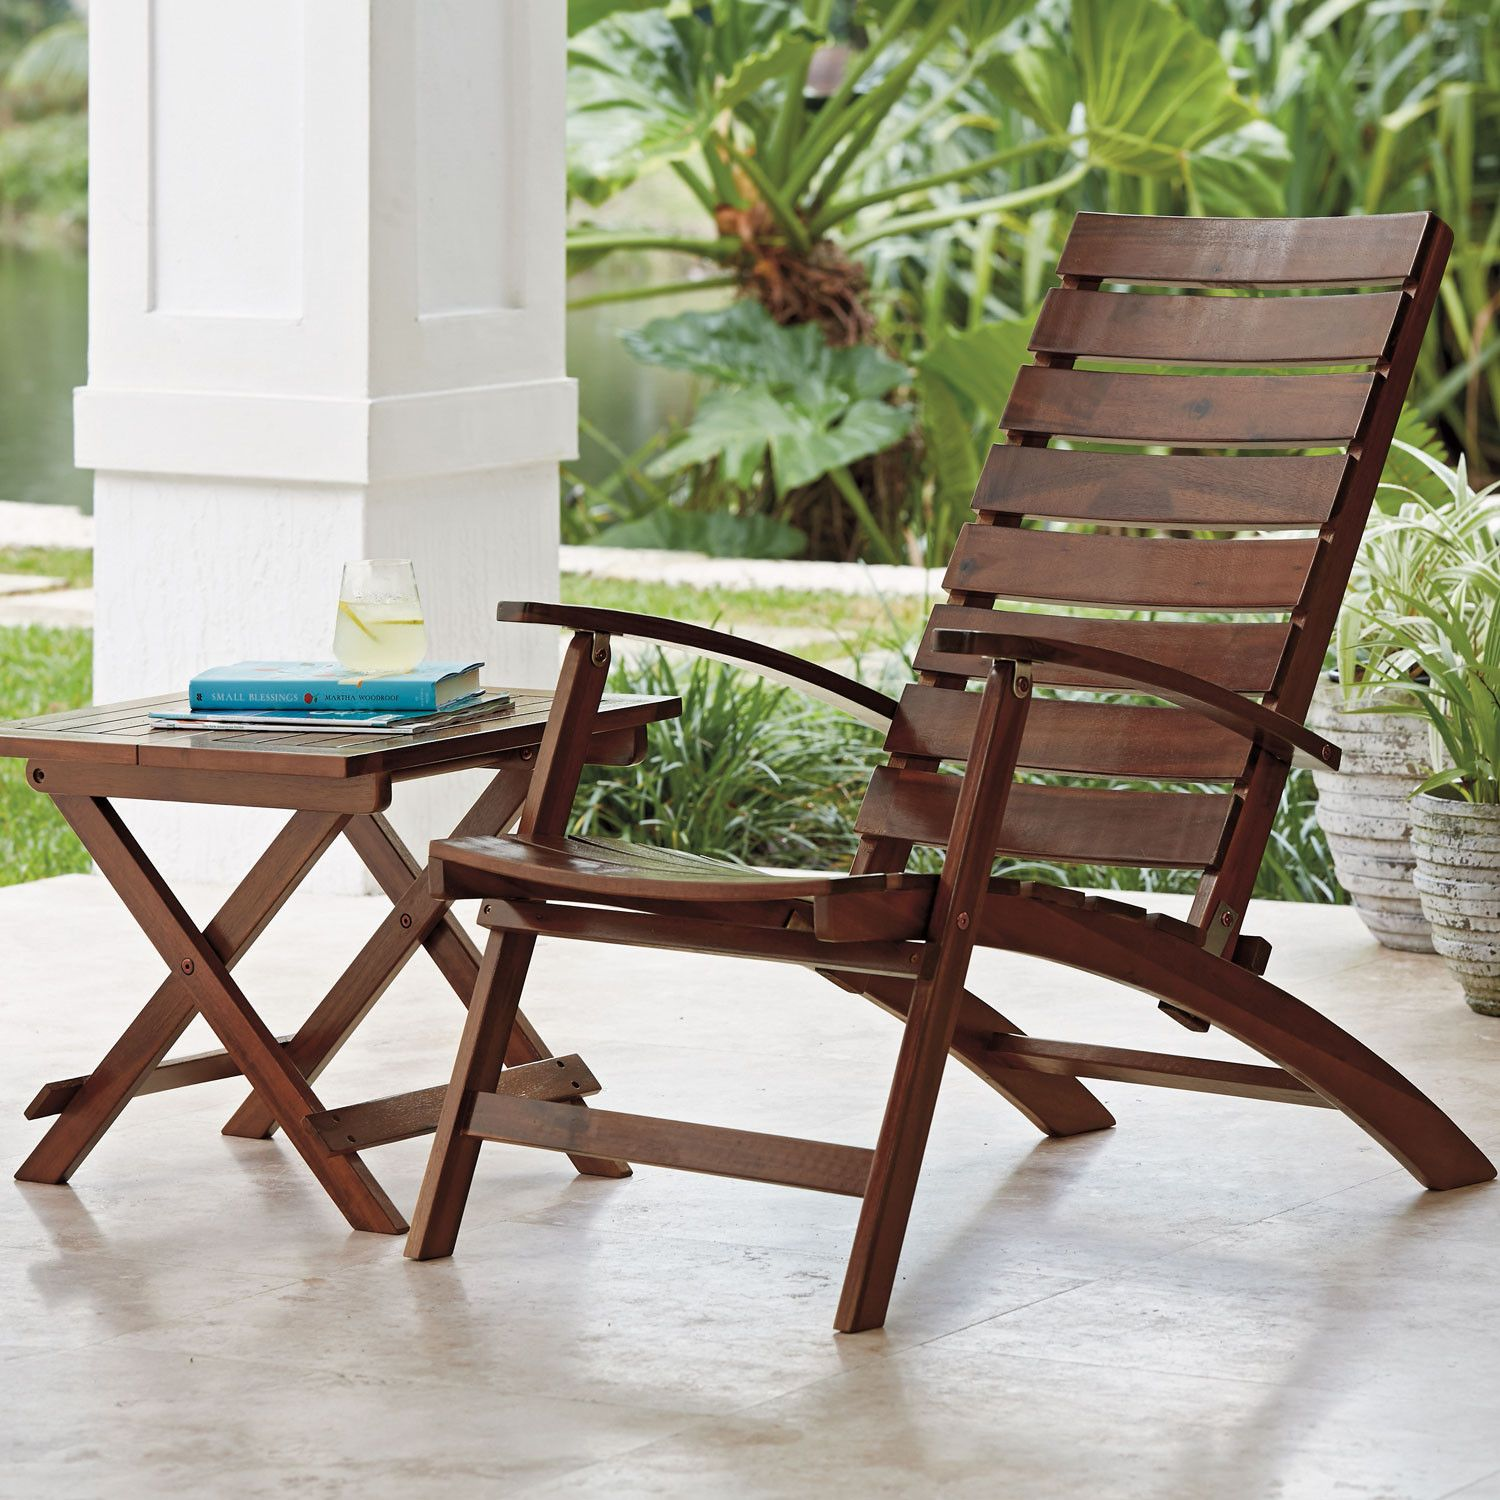 The Pasadena Outdoor Folding Chair And Table Have A